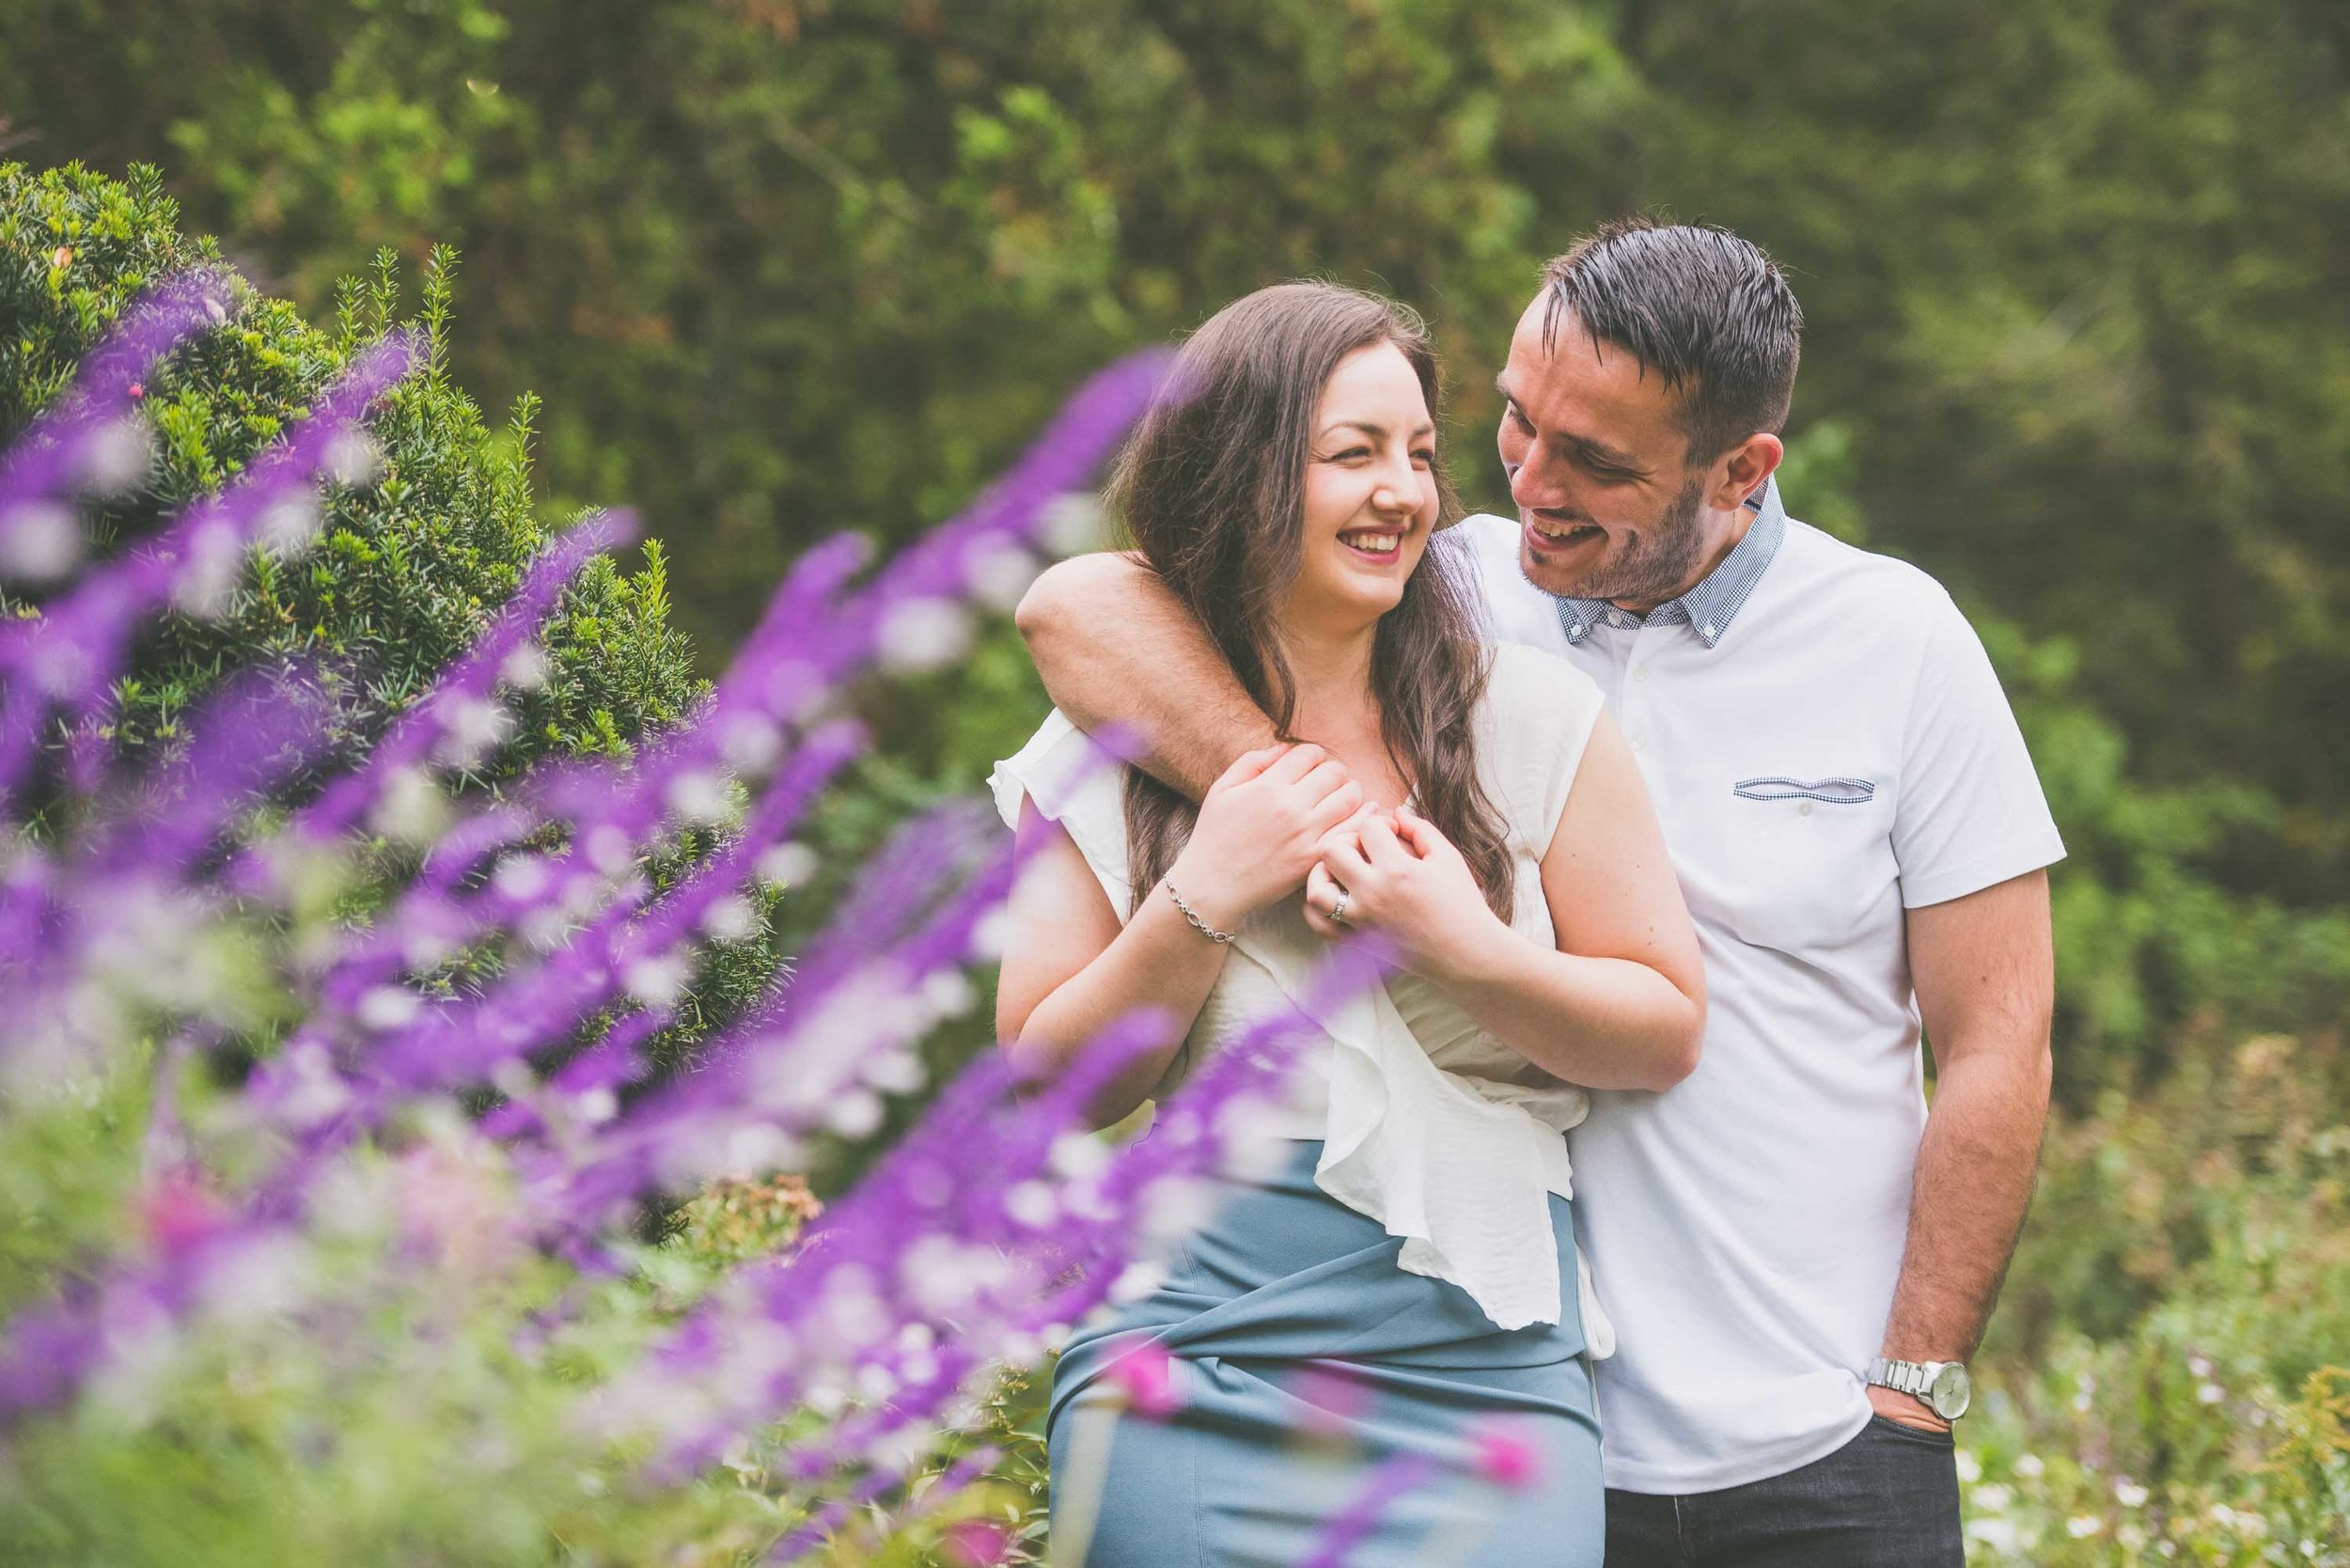 Engagement - couple in park - Photo credit Nicola Bailey.jpg